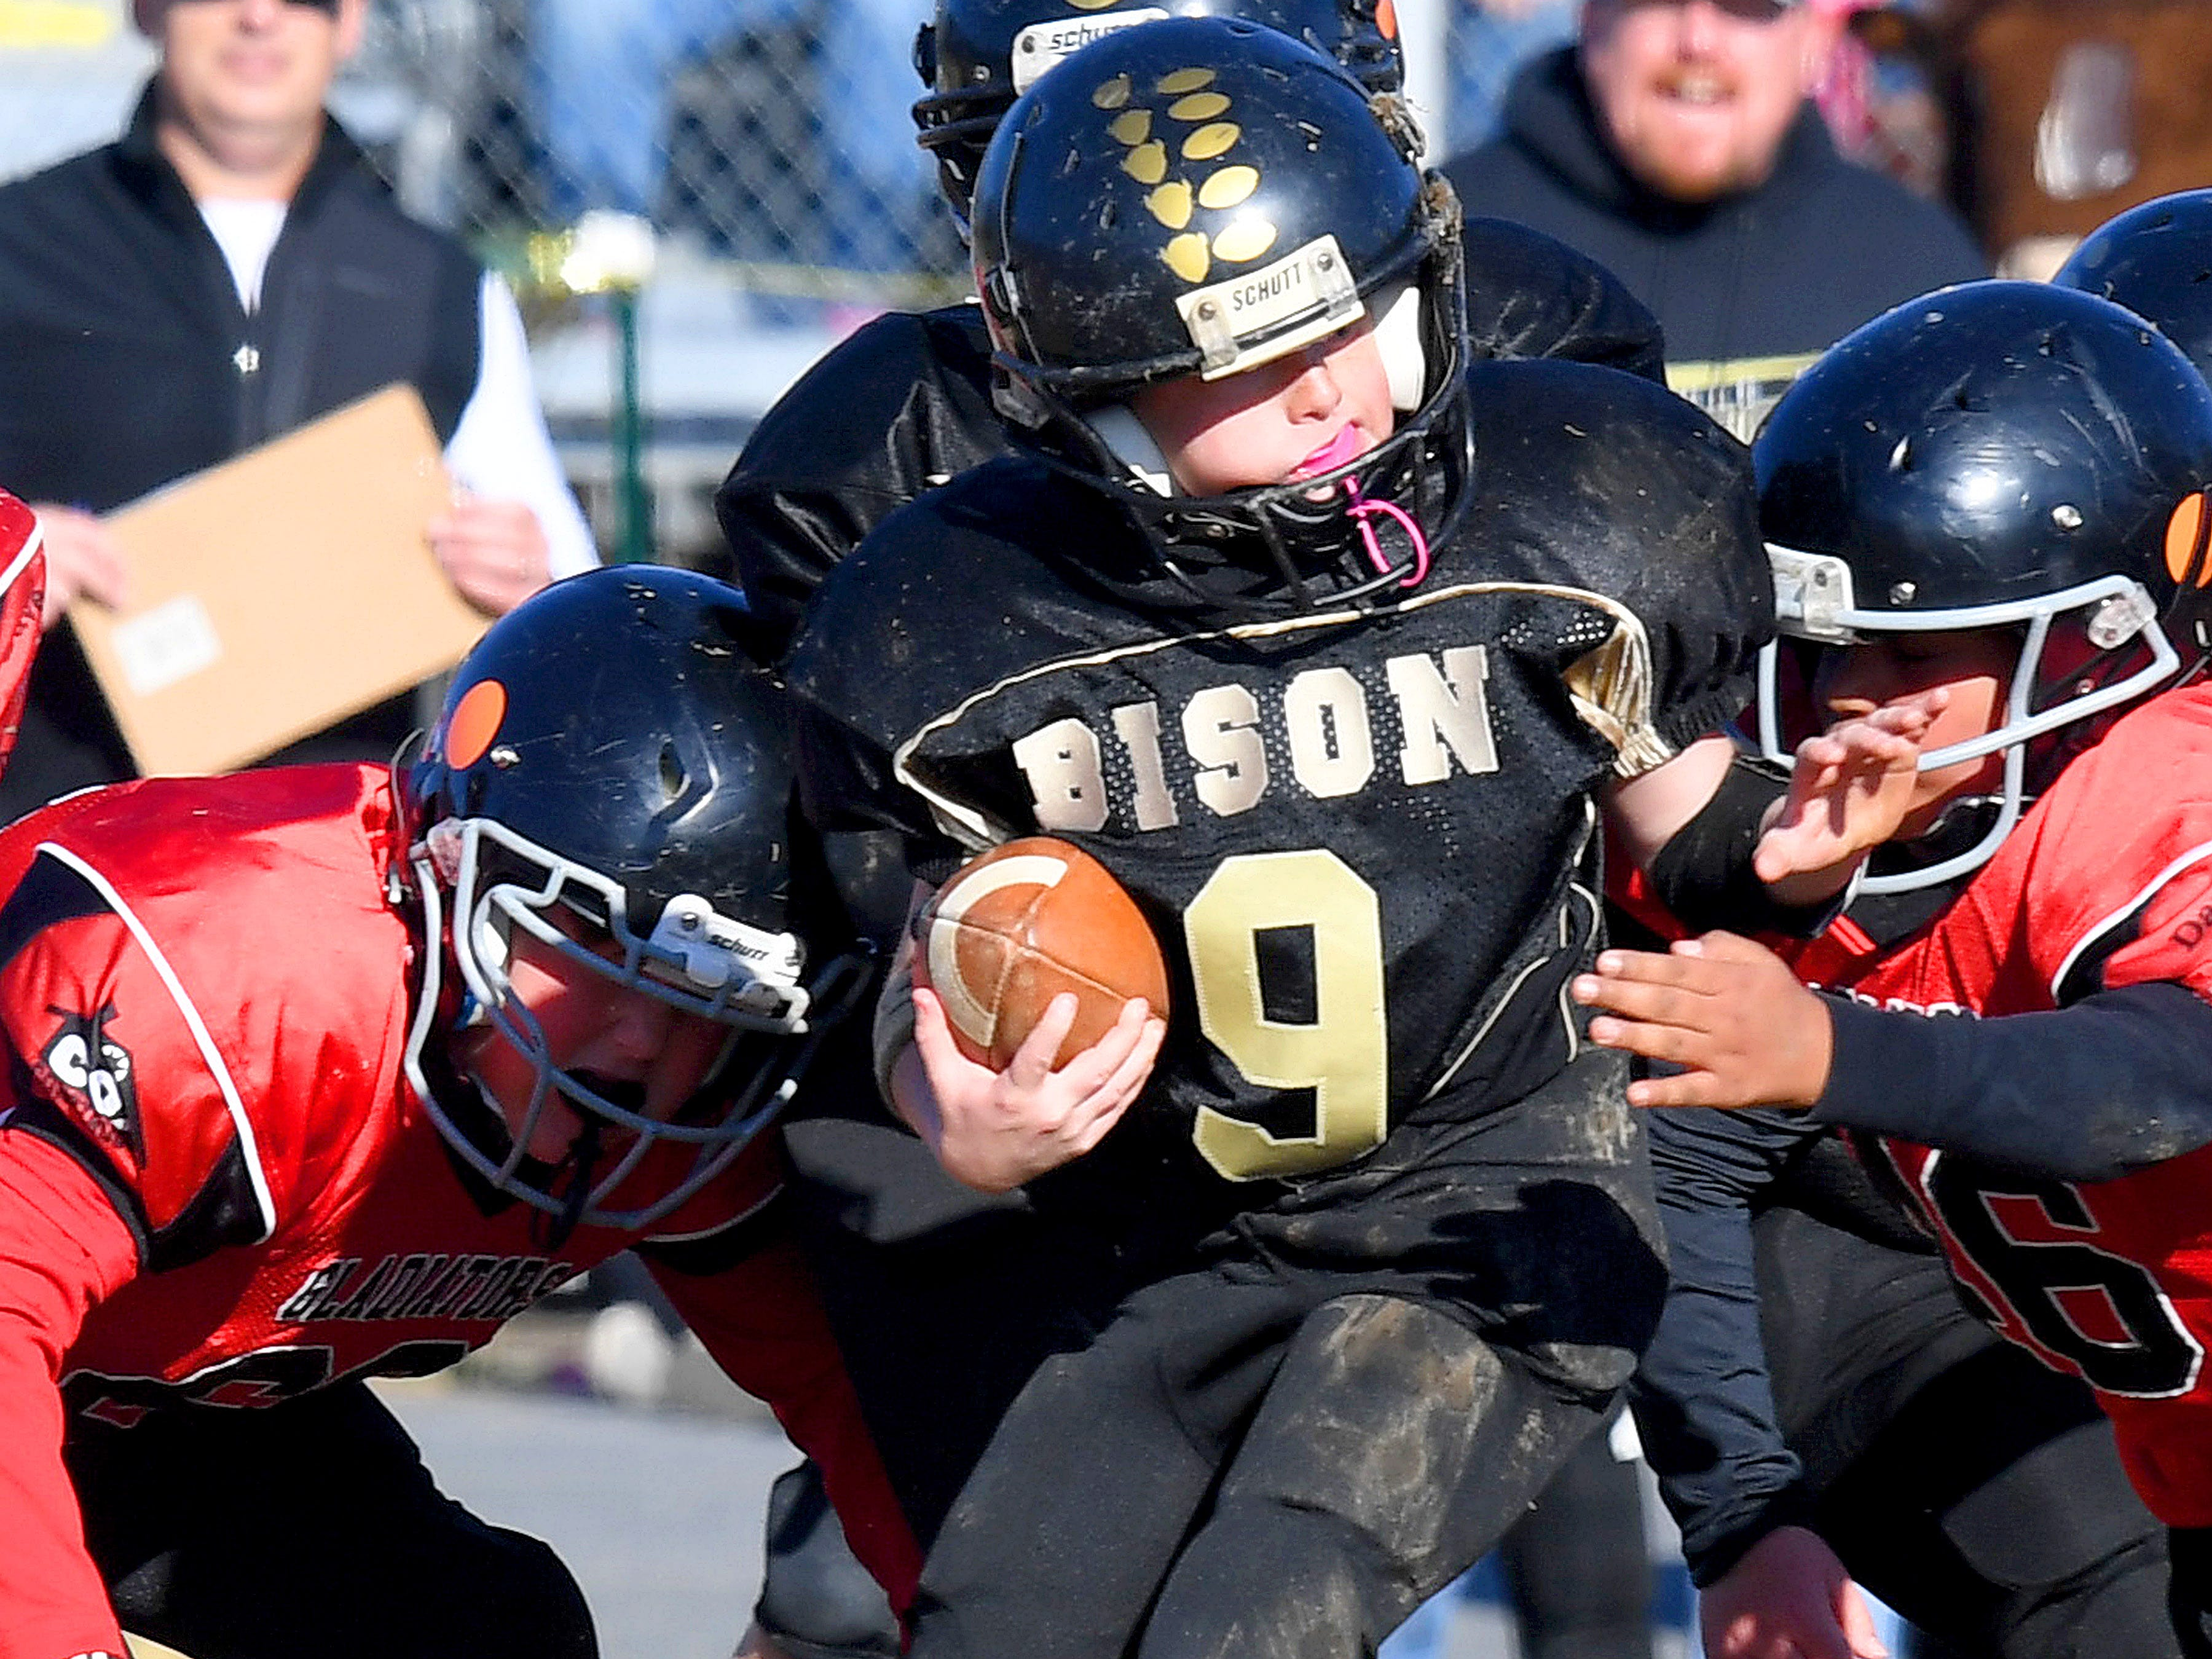 Buffalo Gap's Brandon Argenbright finds himself caught between two Riverheads' defenders as he has the ball during the Augusta County Quarterback Club Midget Super Bowl in Fishersville on Sunday, Nov. 11, 2018. Riverheads beat Buffalo Gap, 25-6.